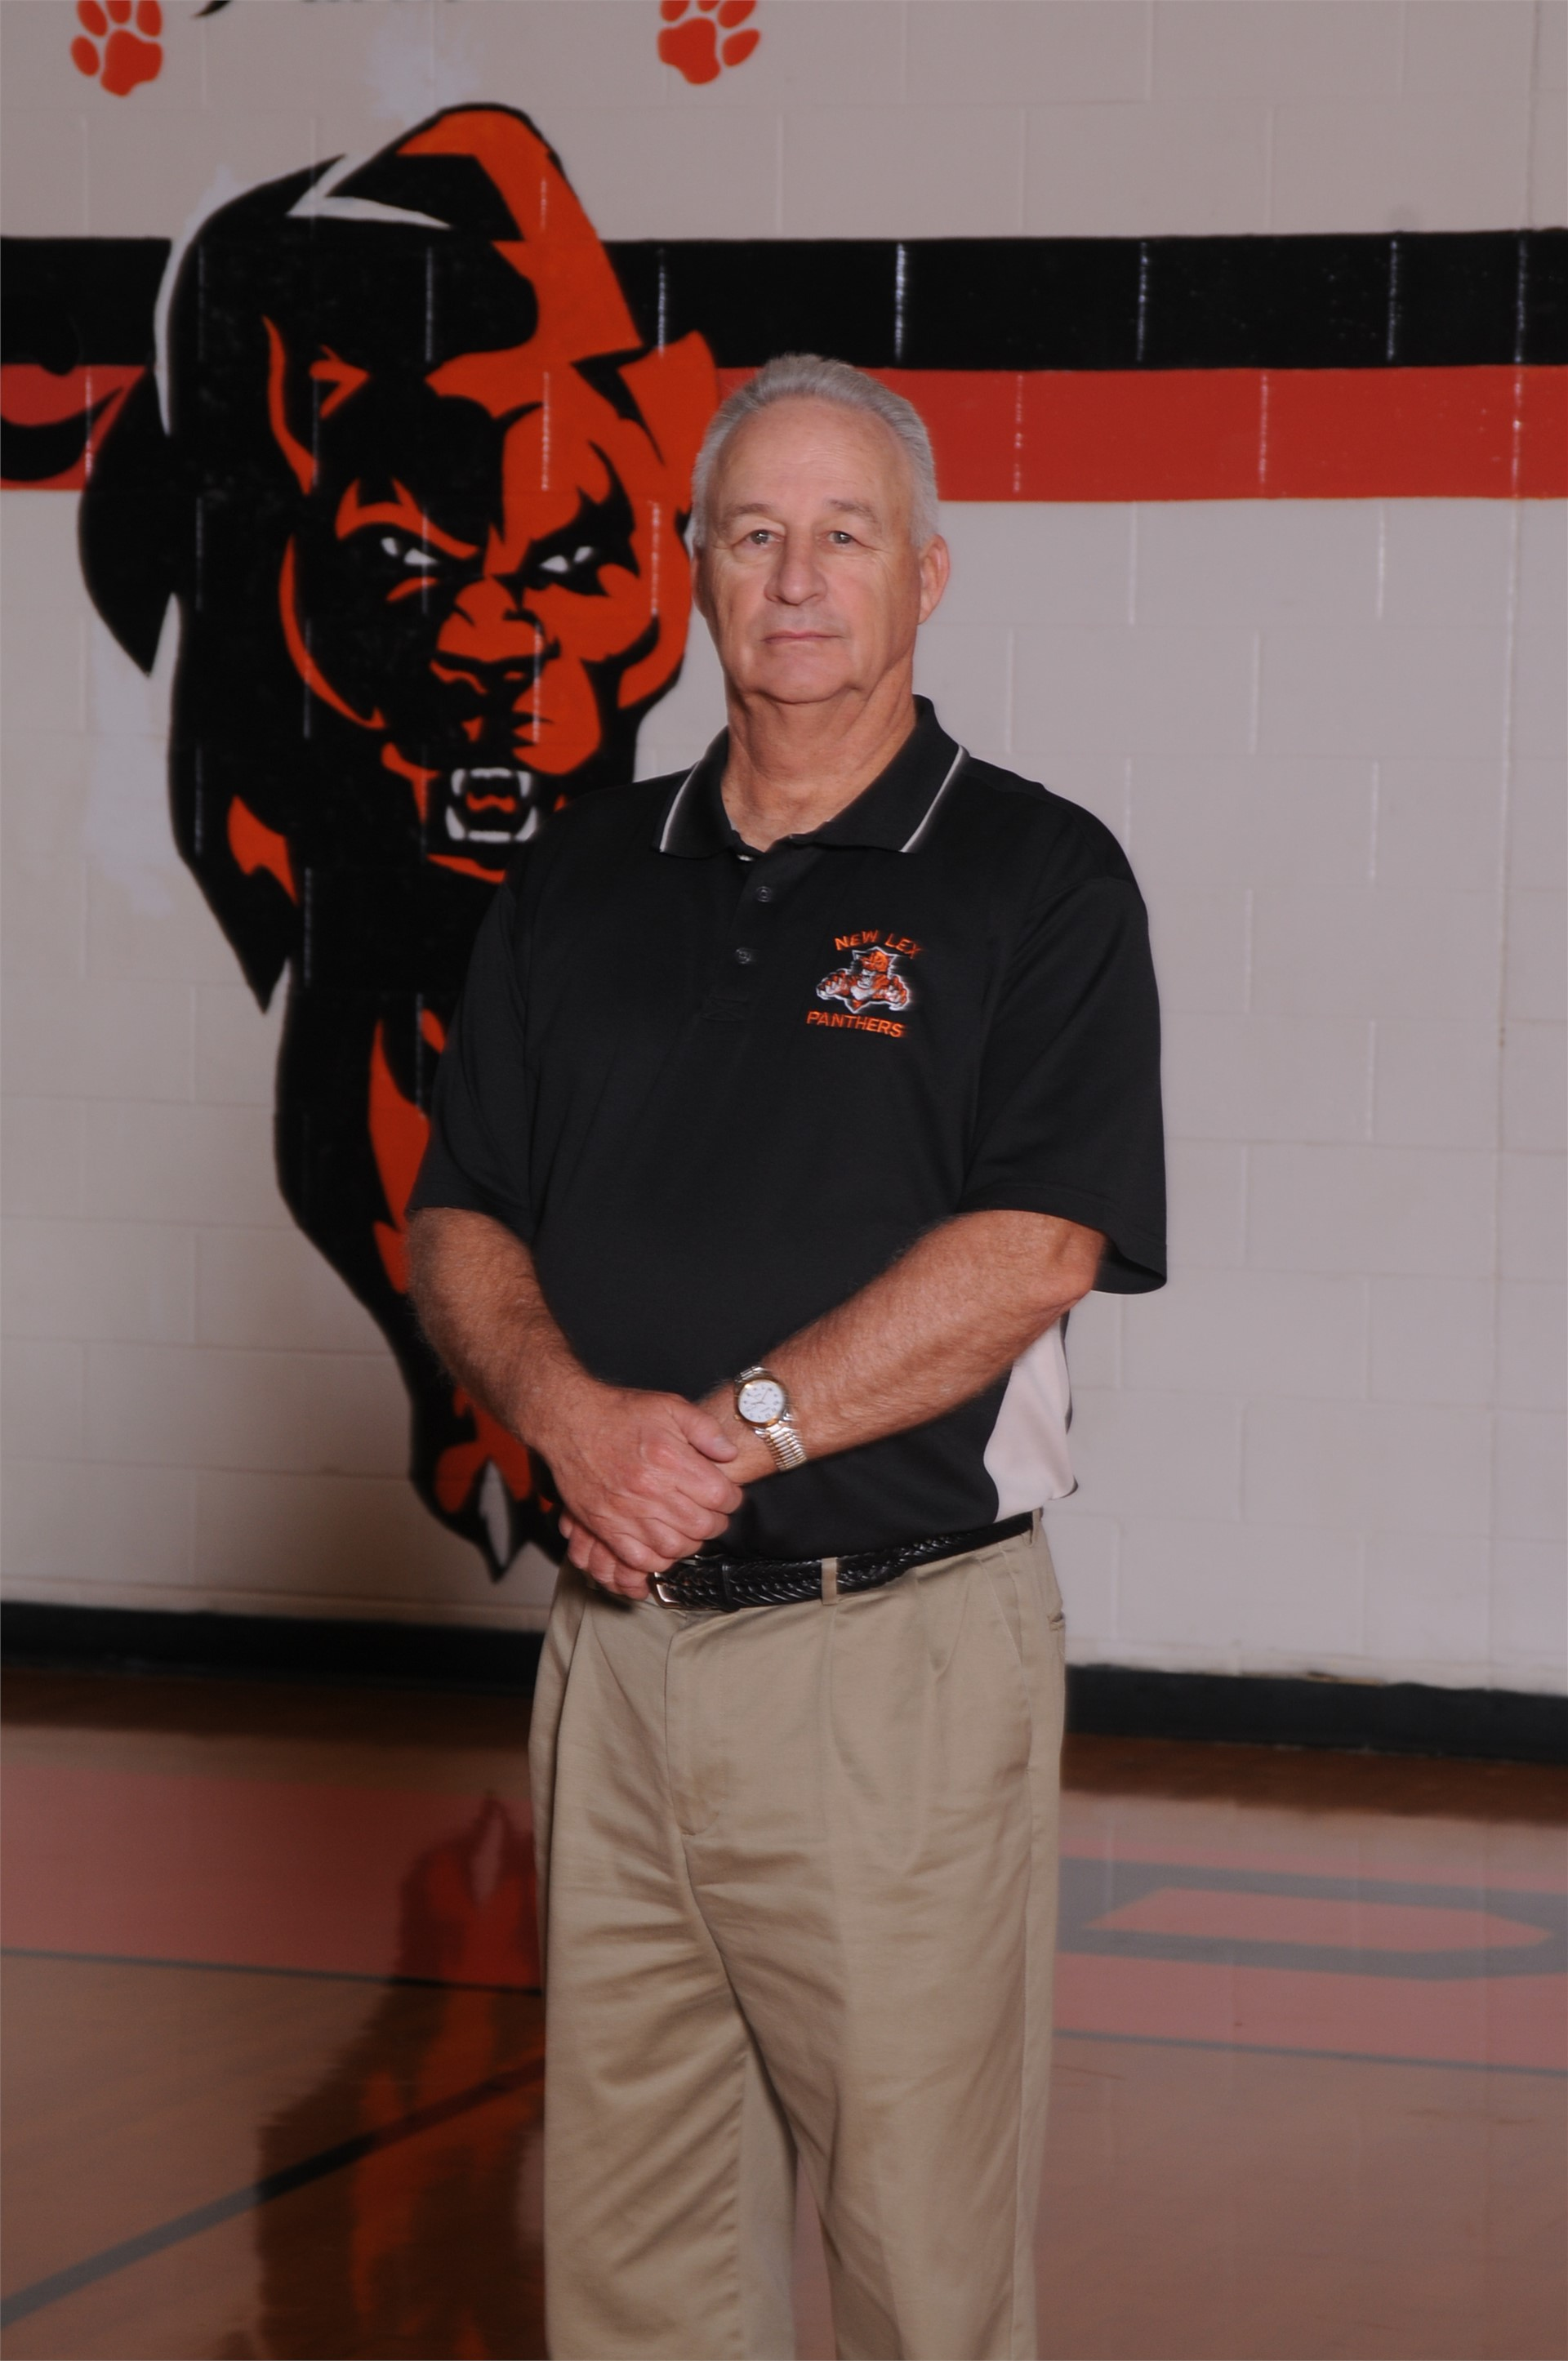 MS COACH JERRY BANKES